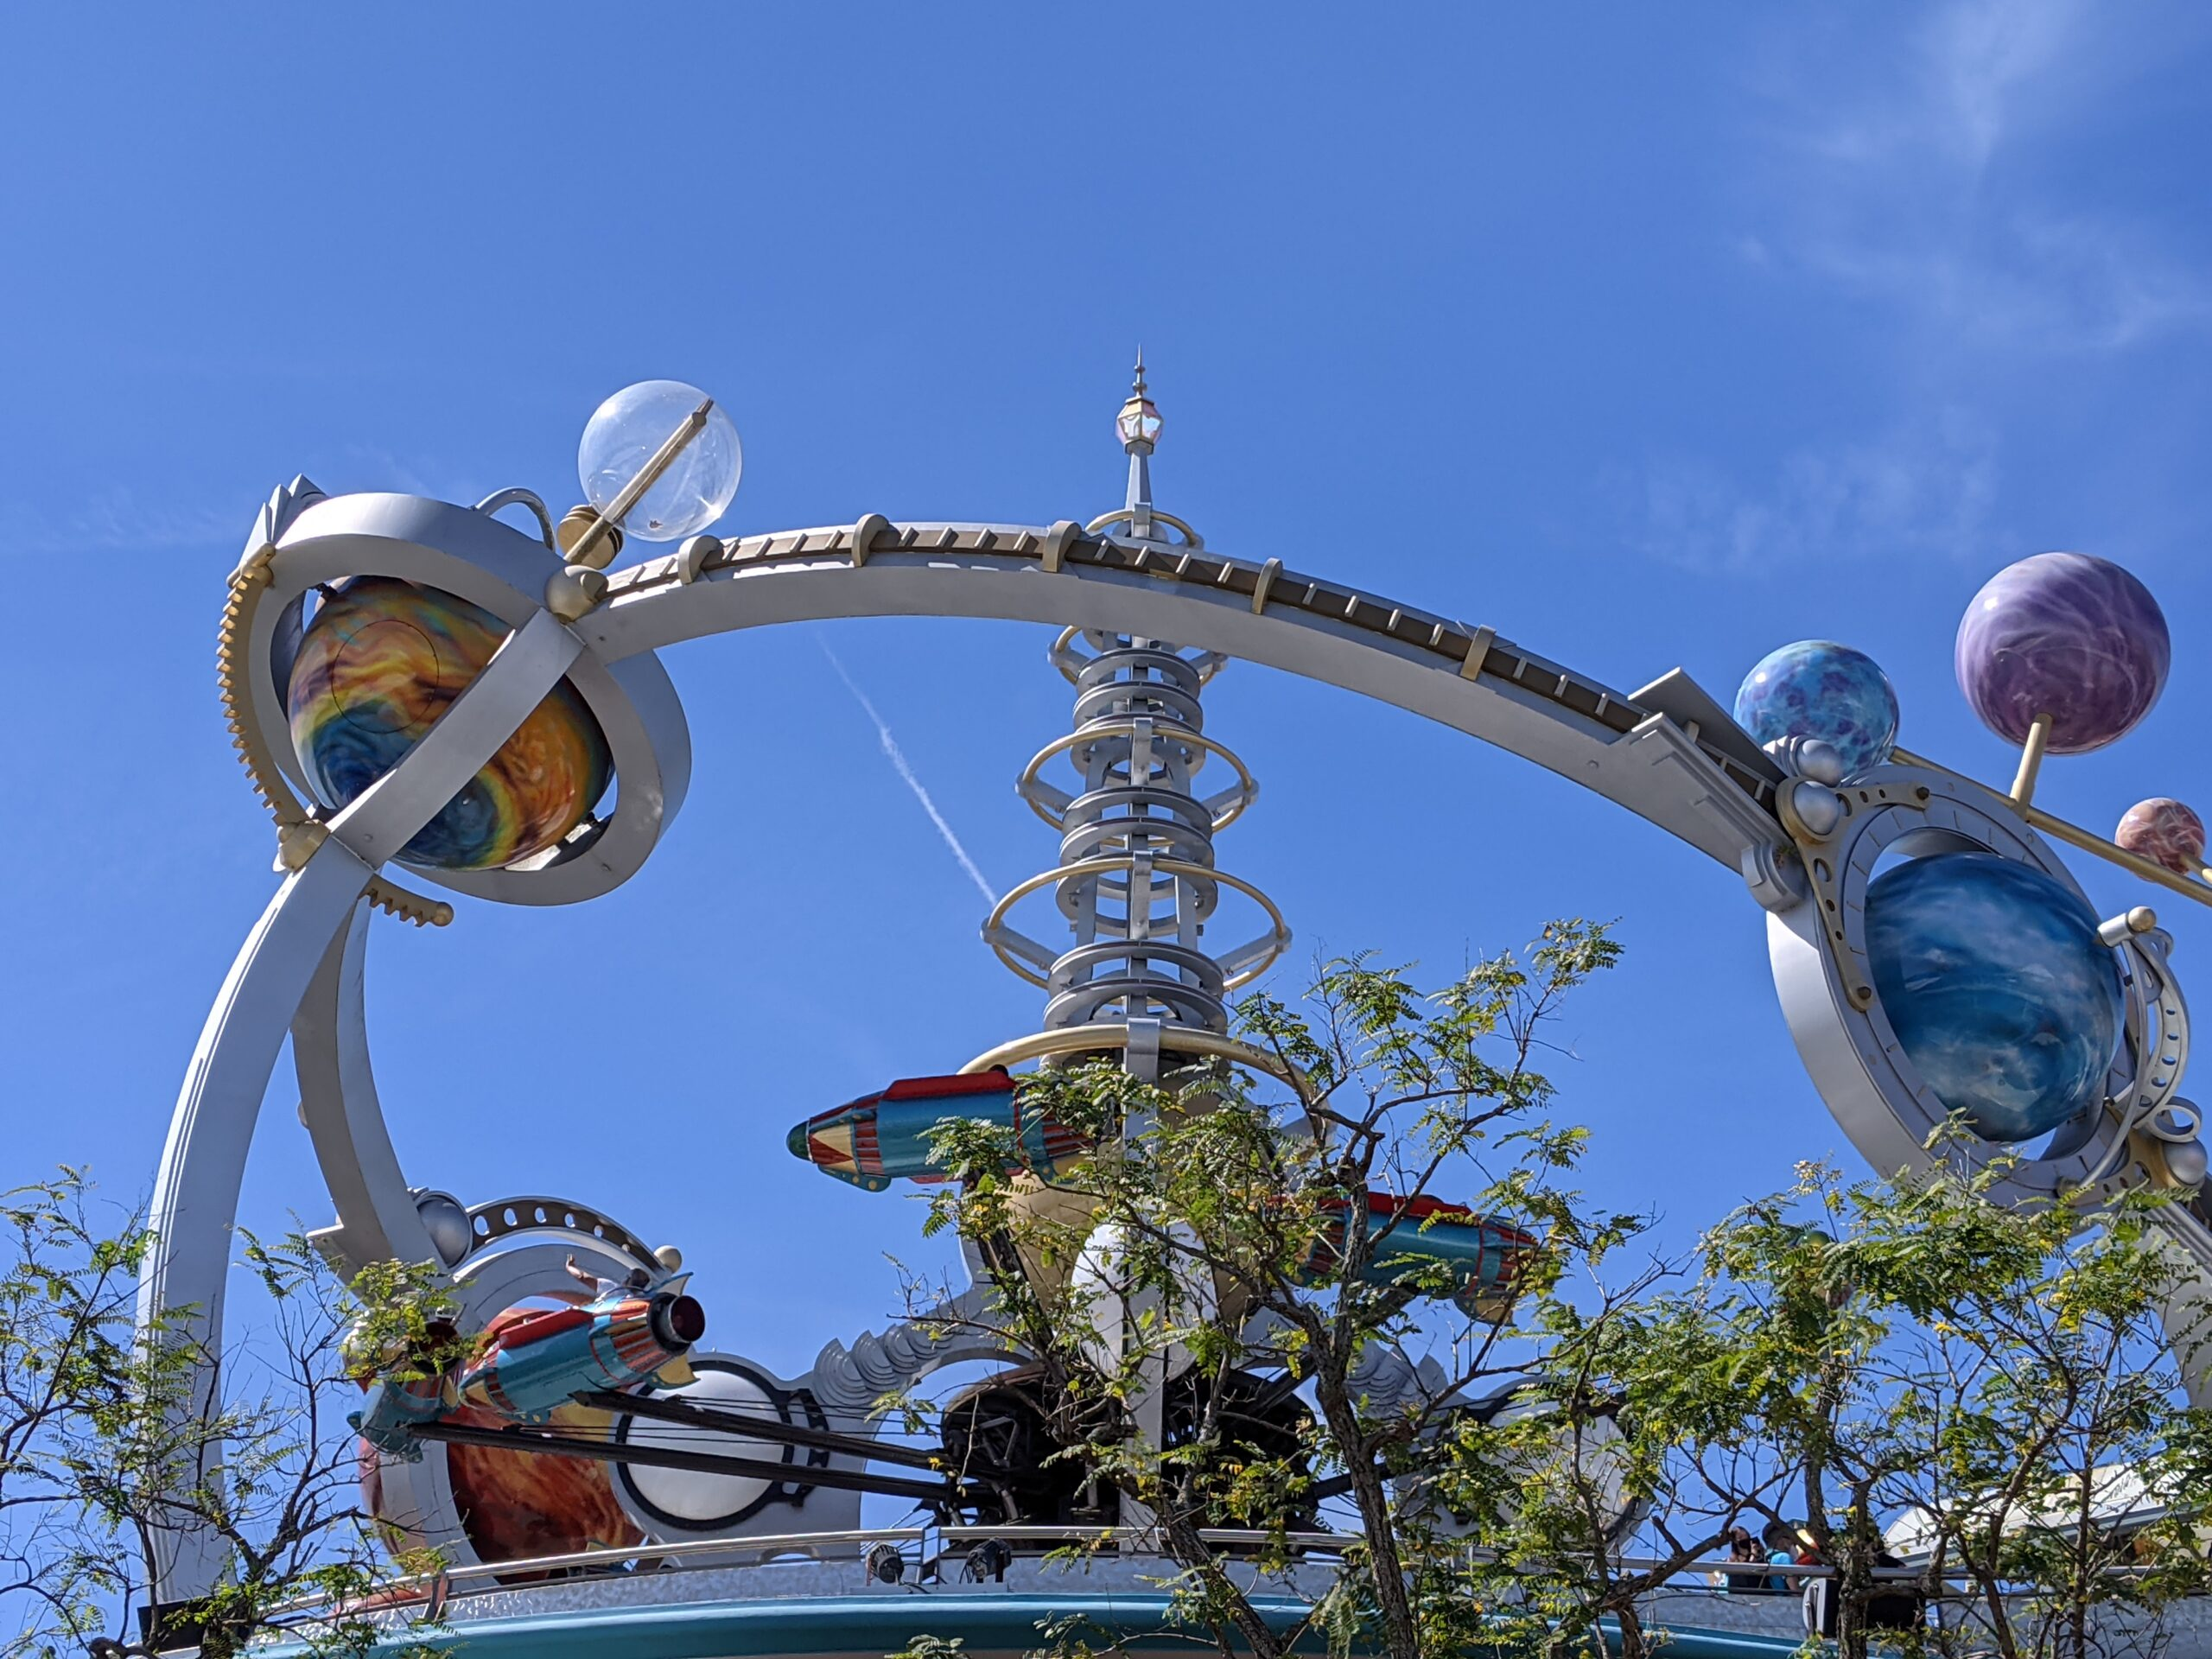 Astro Orbiter Attraction at Magic Kingdom